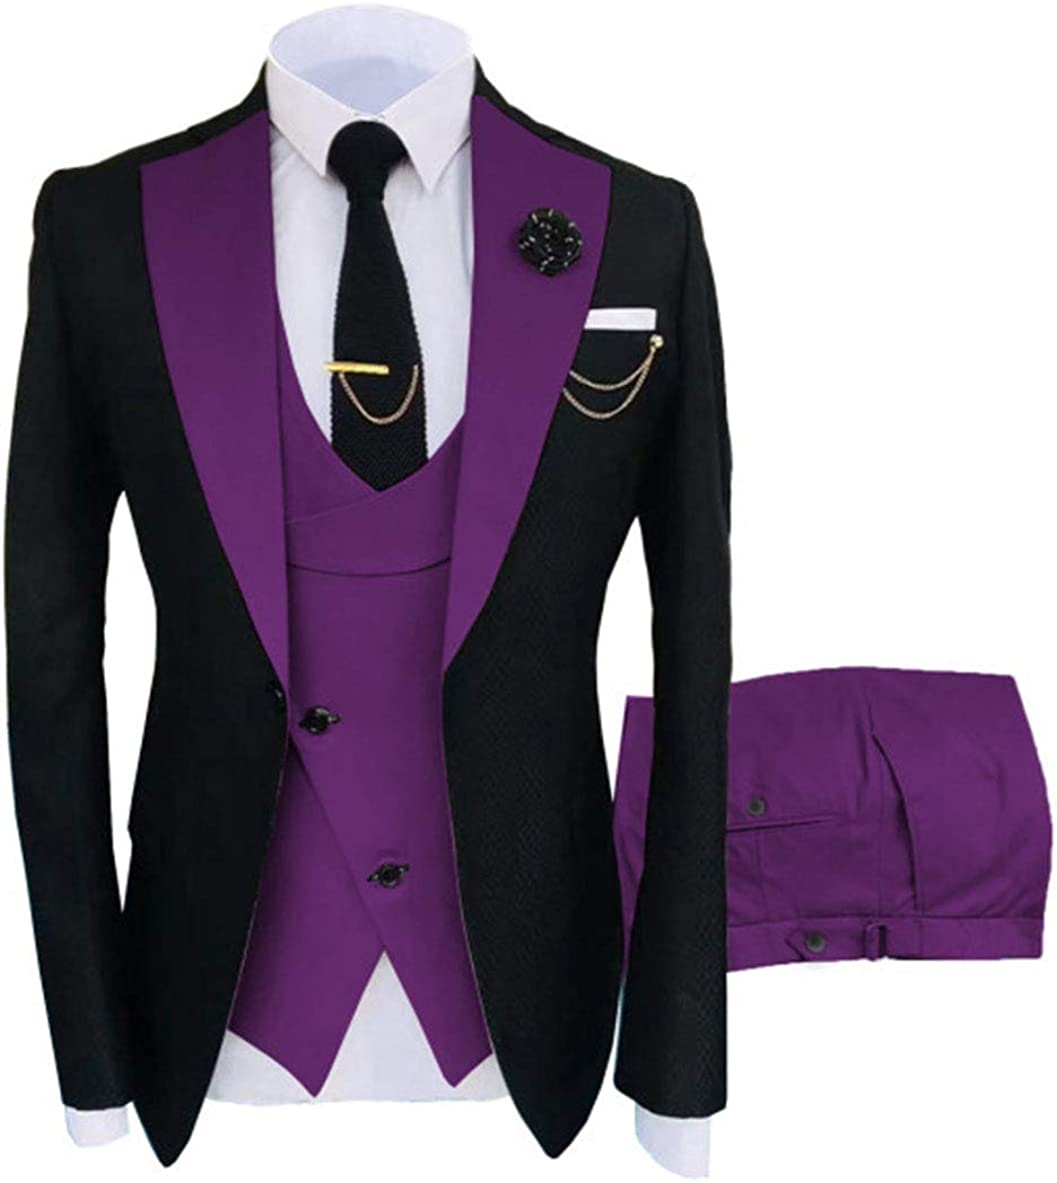 Three Pieces Men's Suit Notched Label Formal Groomsmen Tuxedos Blazers for Wedding Jackt Vest and Pant